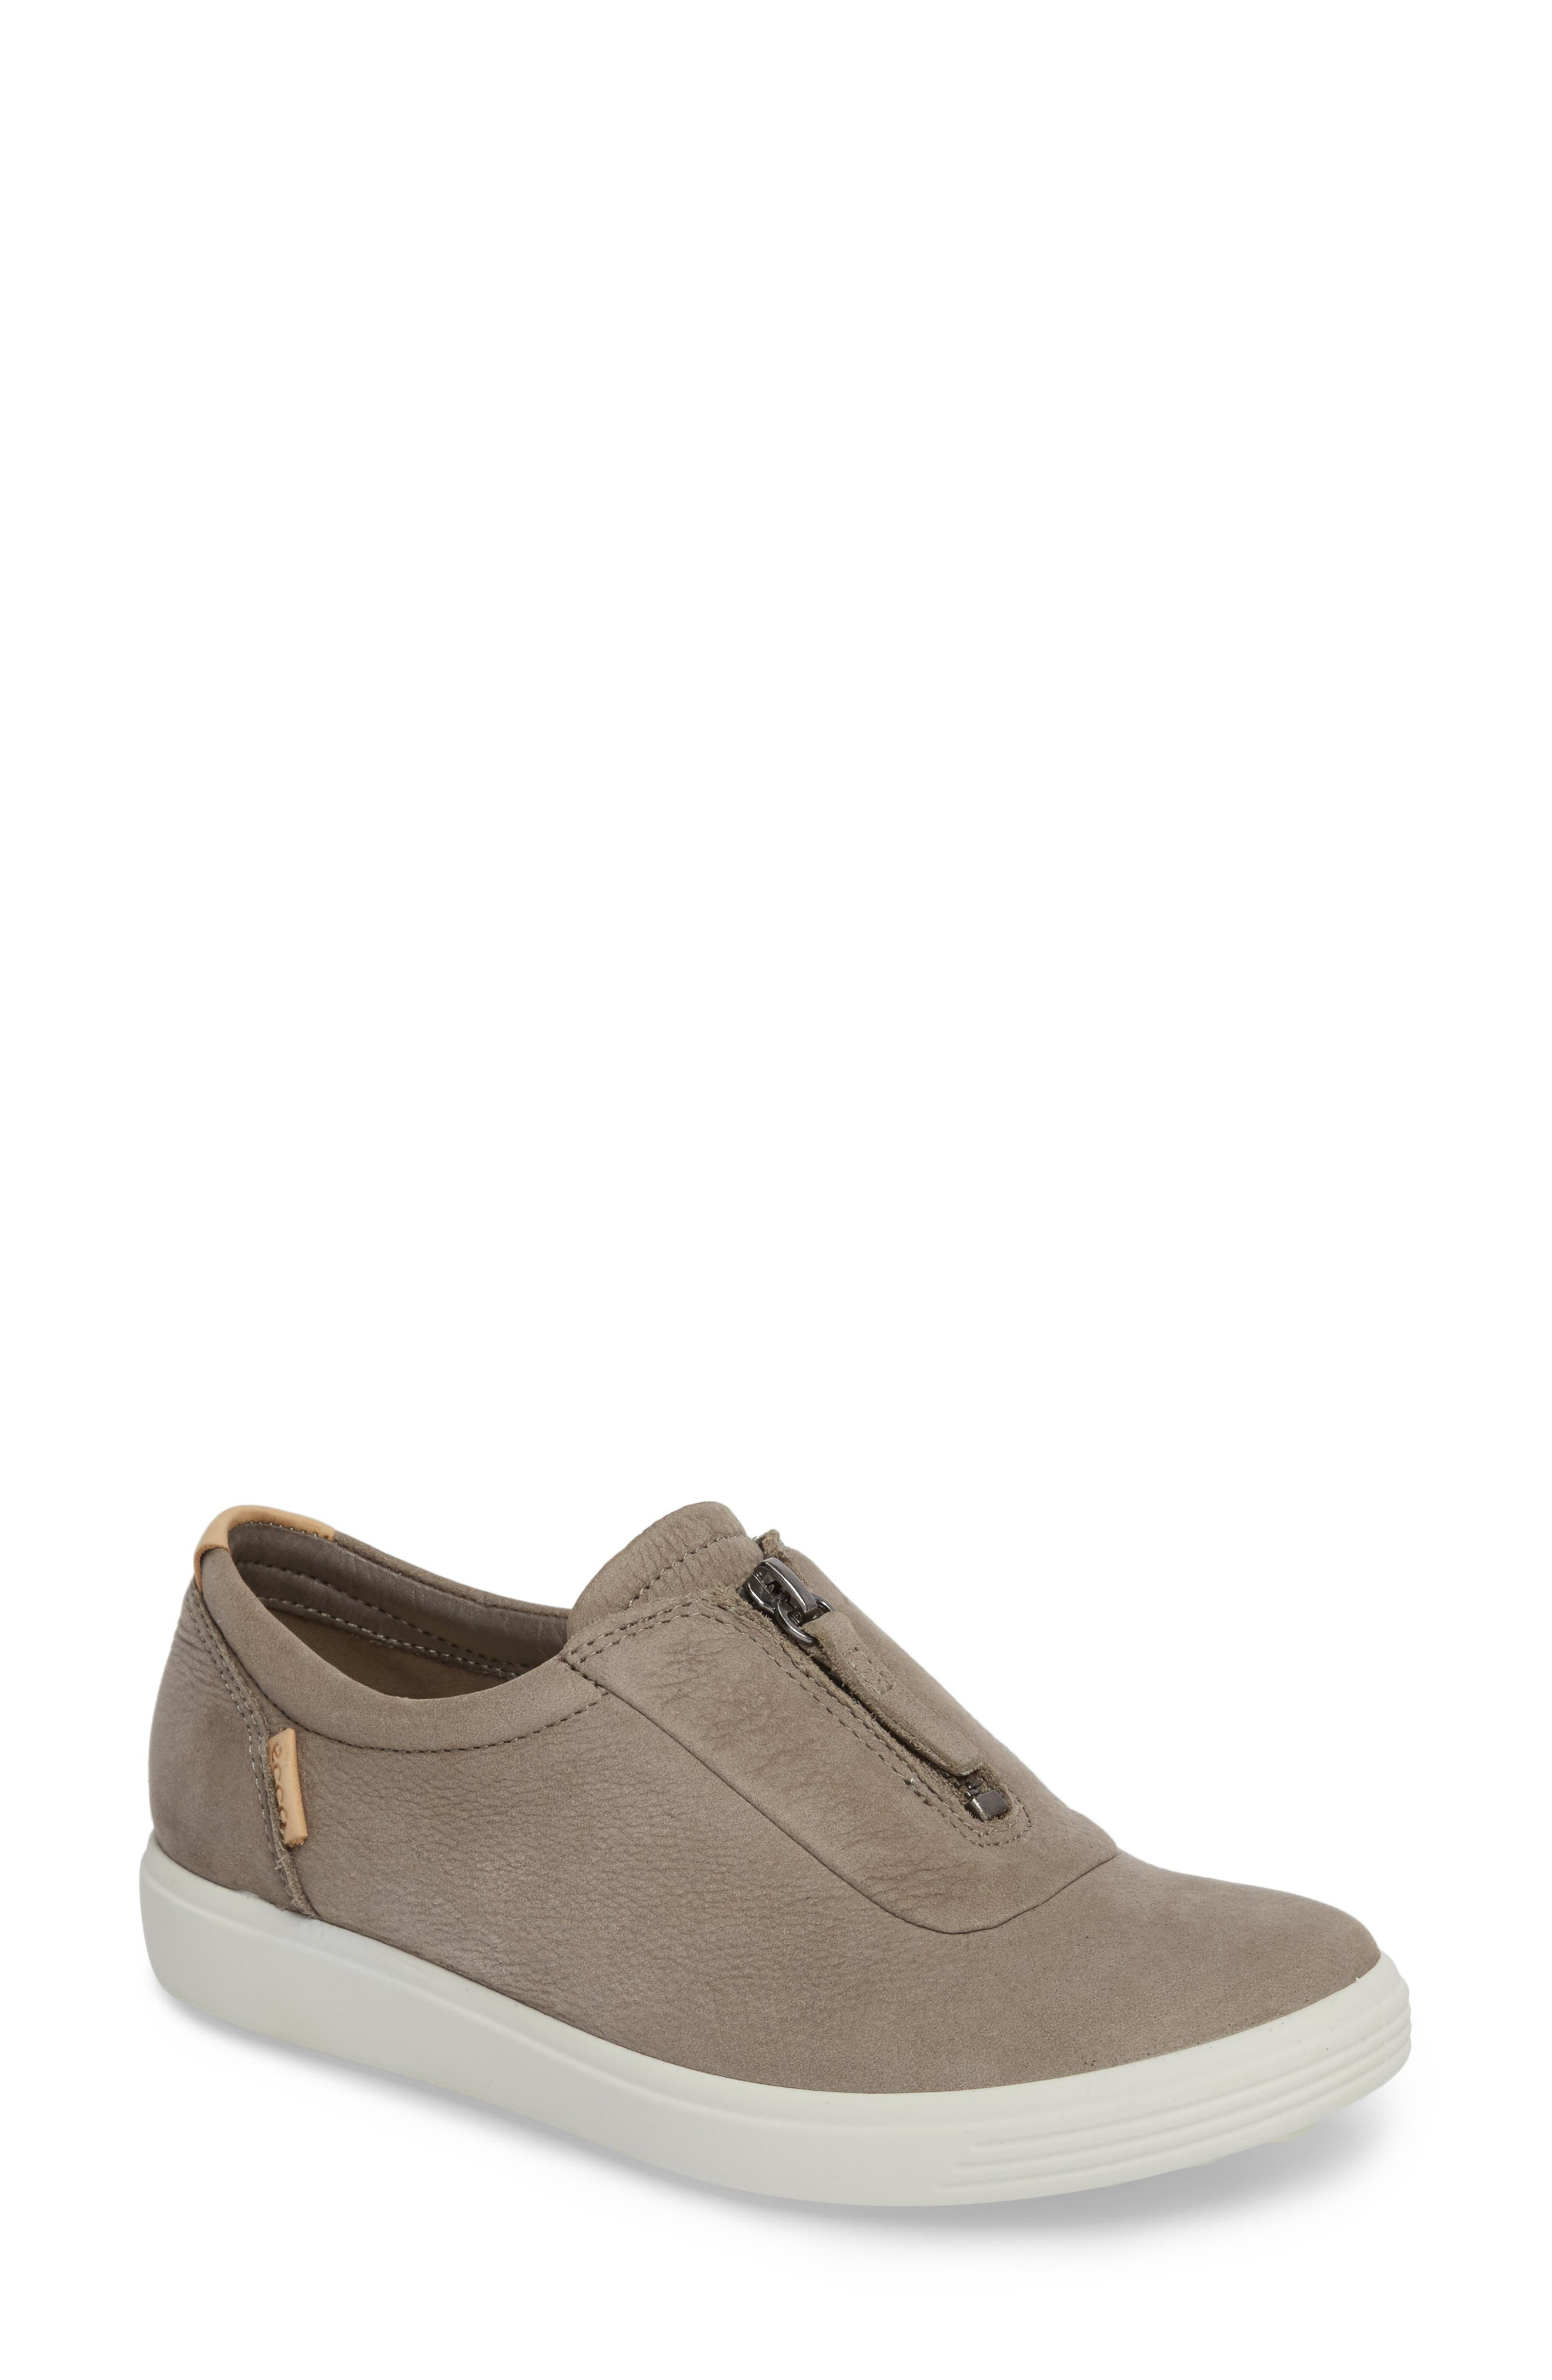 ecco sneakers for women